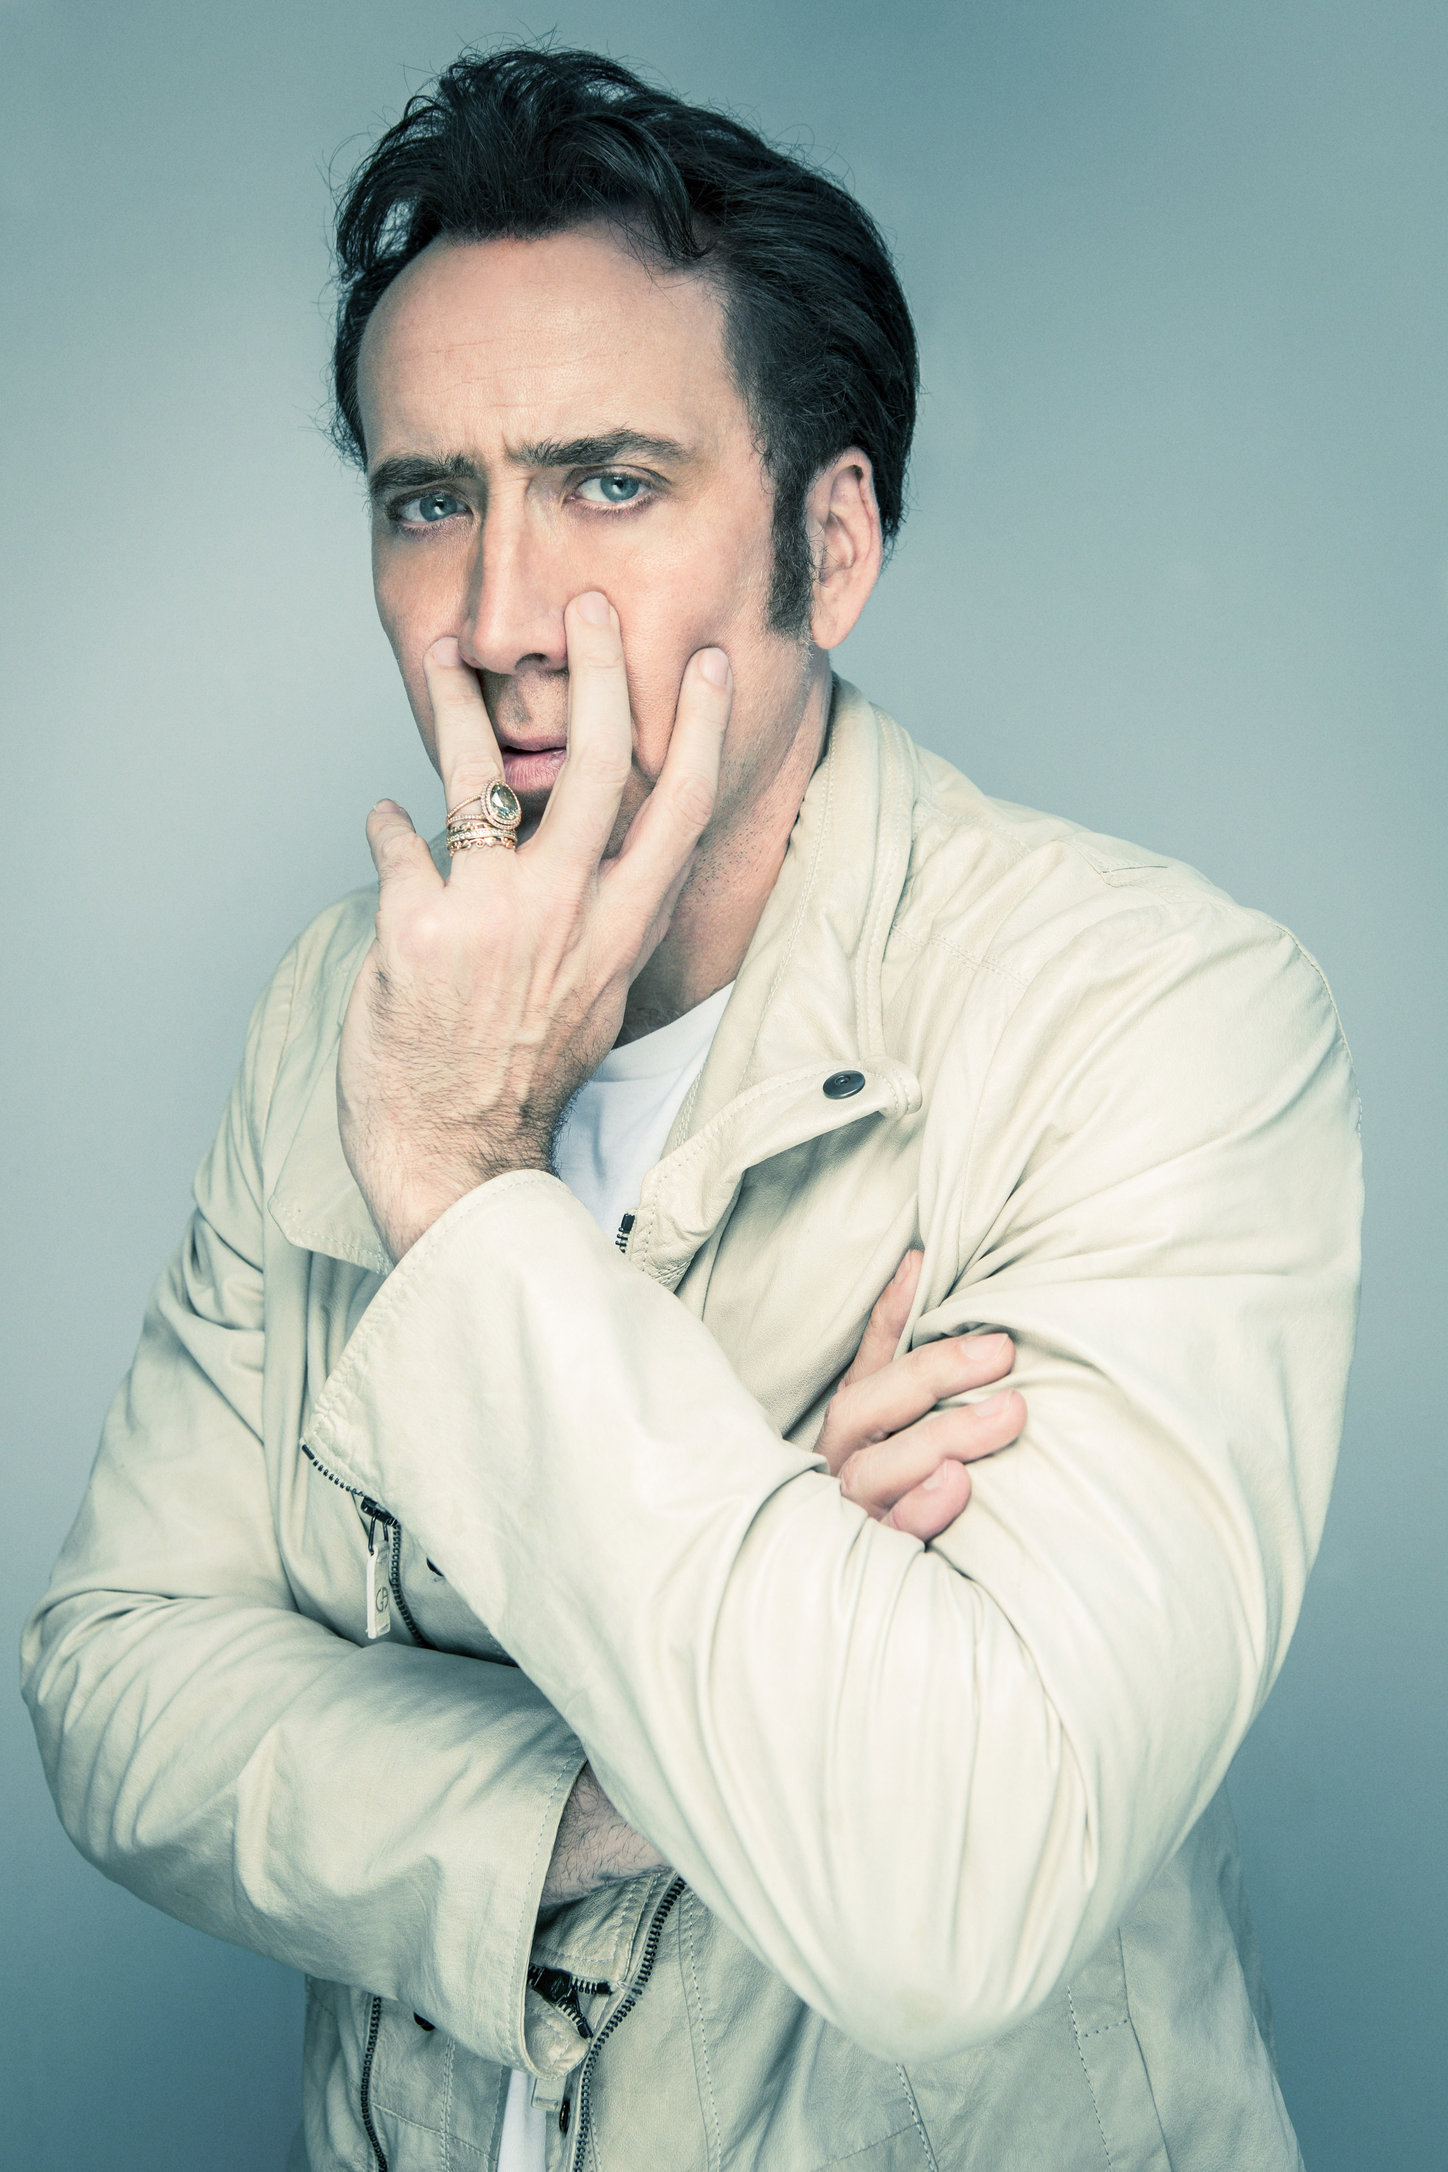 nicolas cage, actor